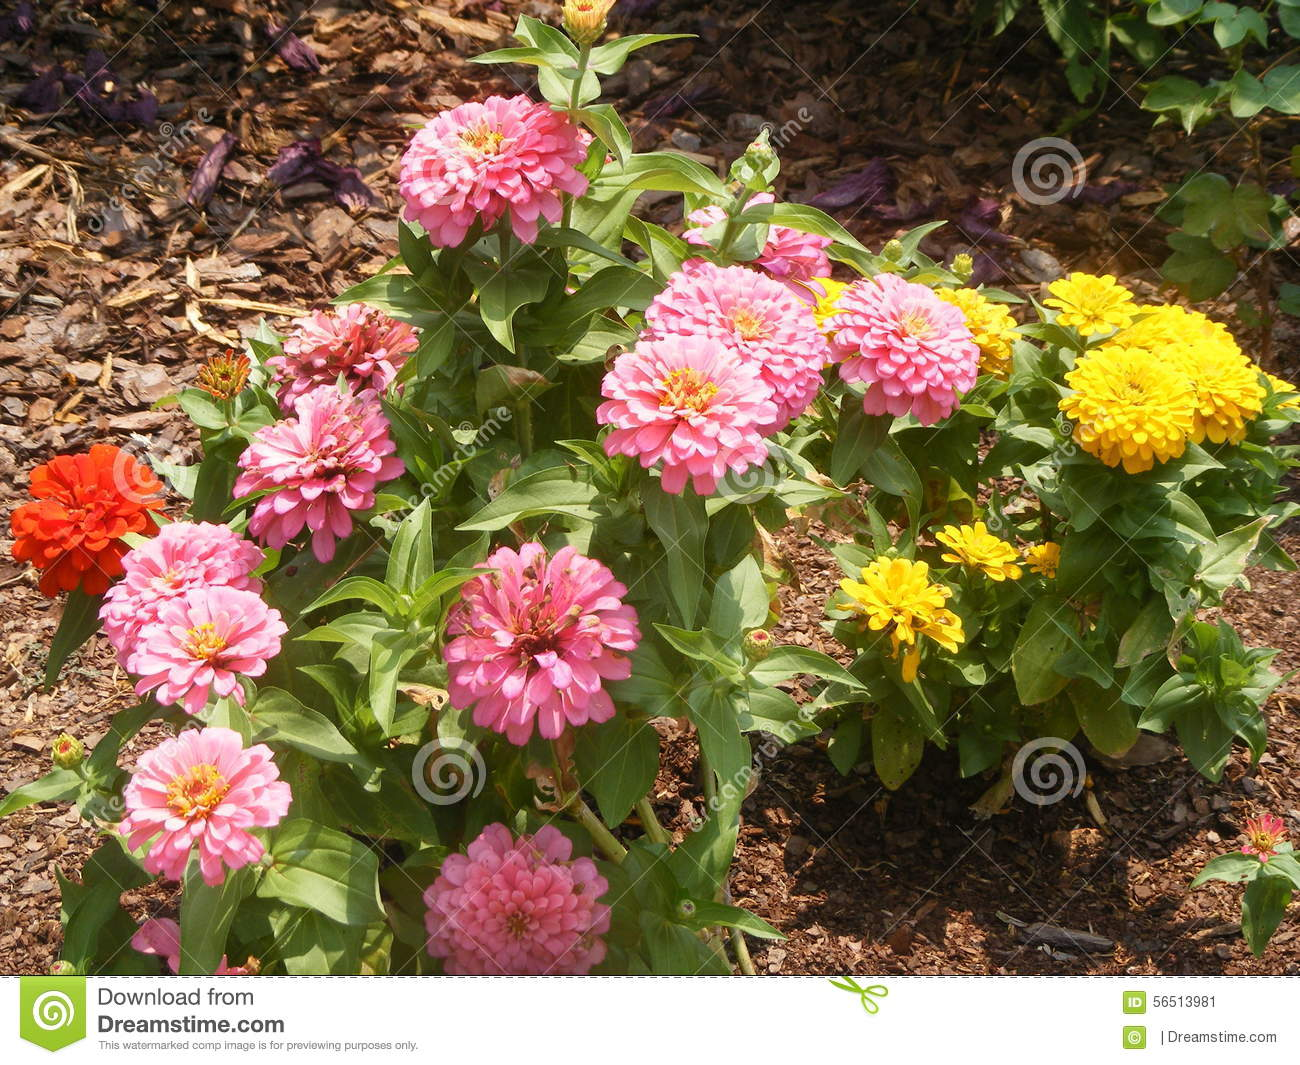 Flowers stock photo image 56513981 for What makes flowers different colors